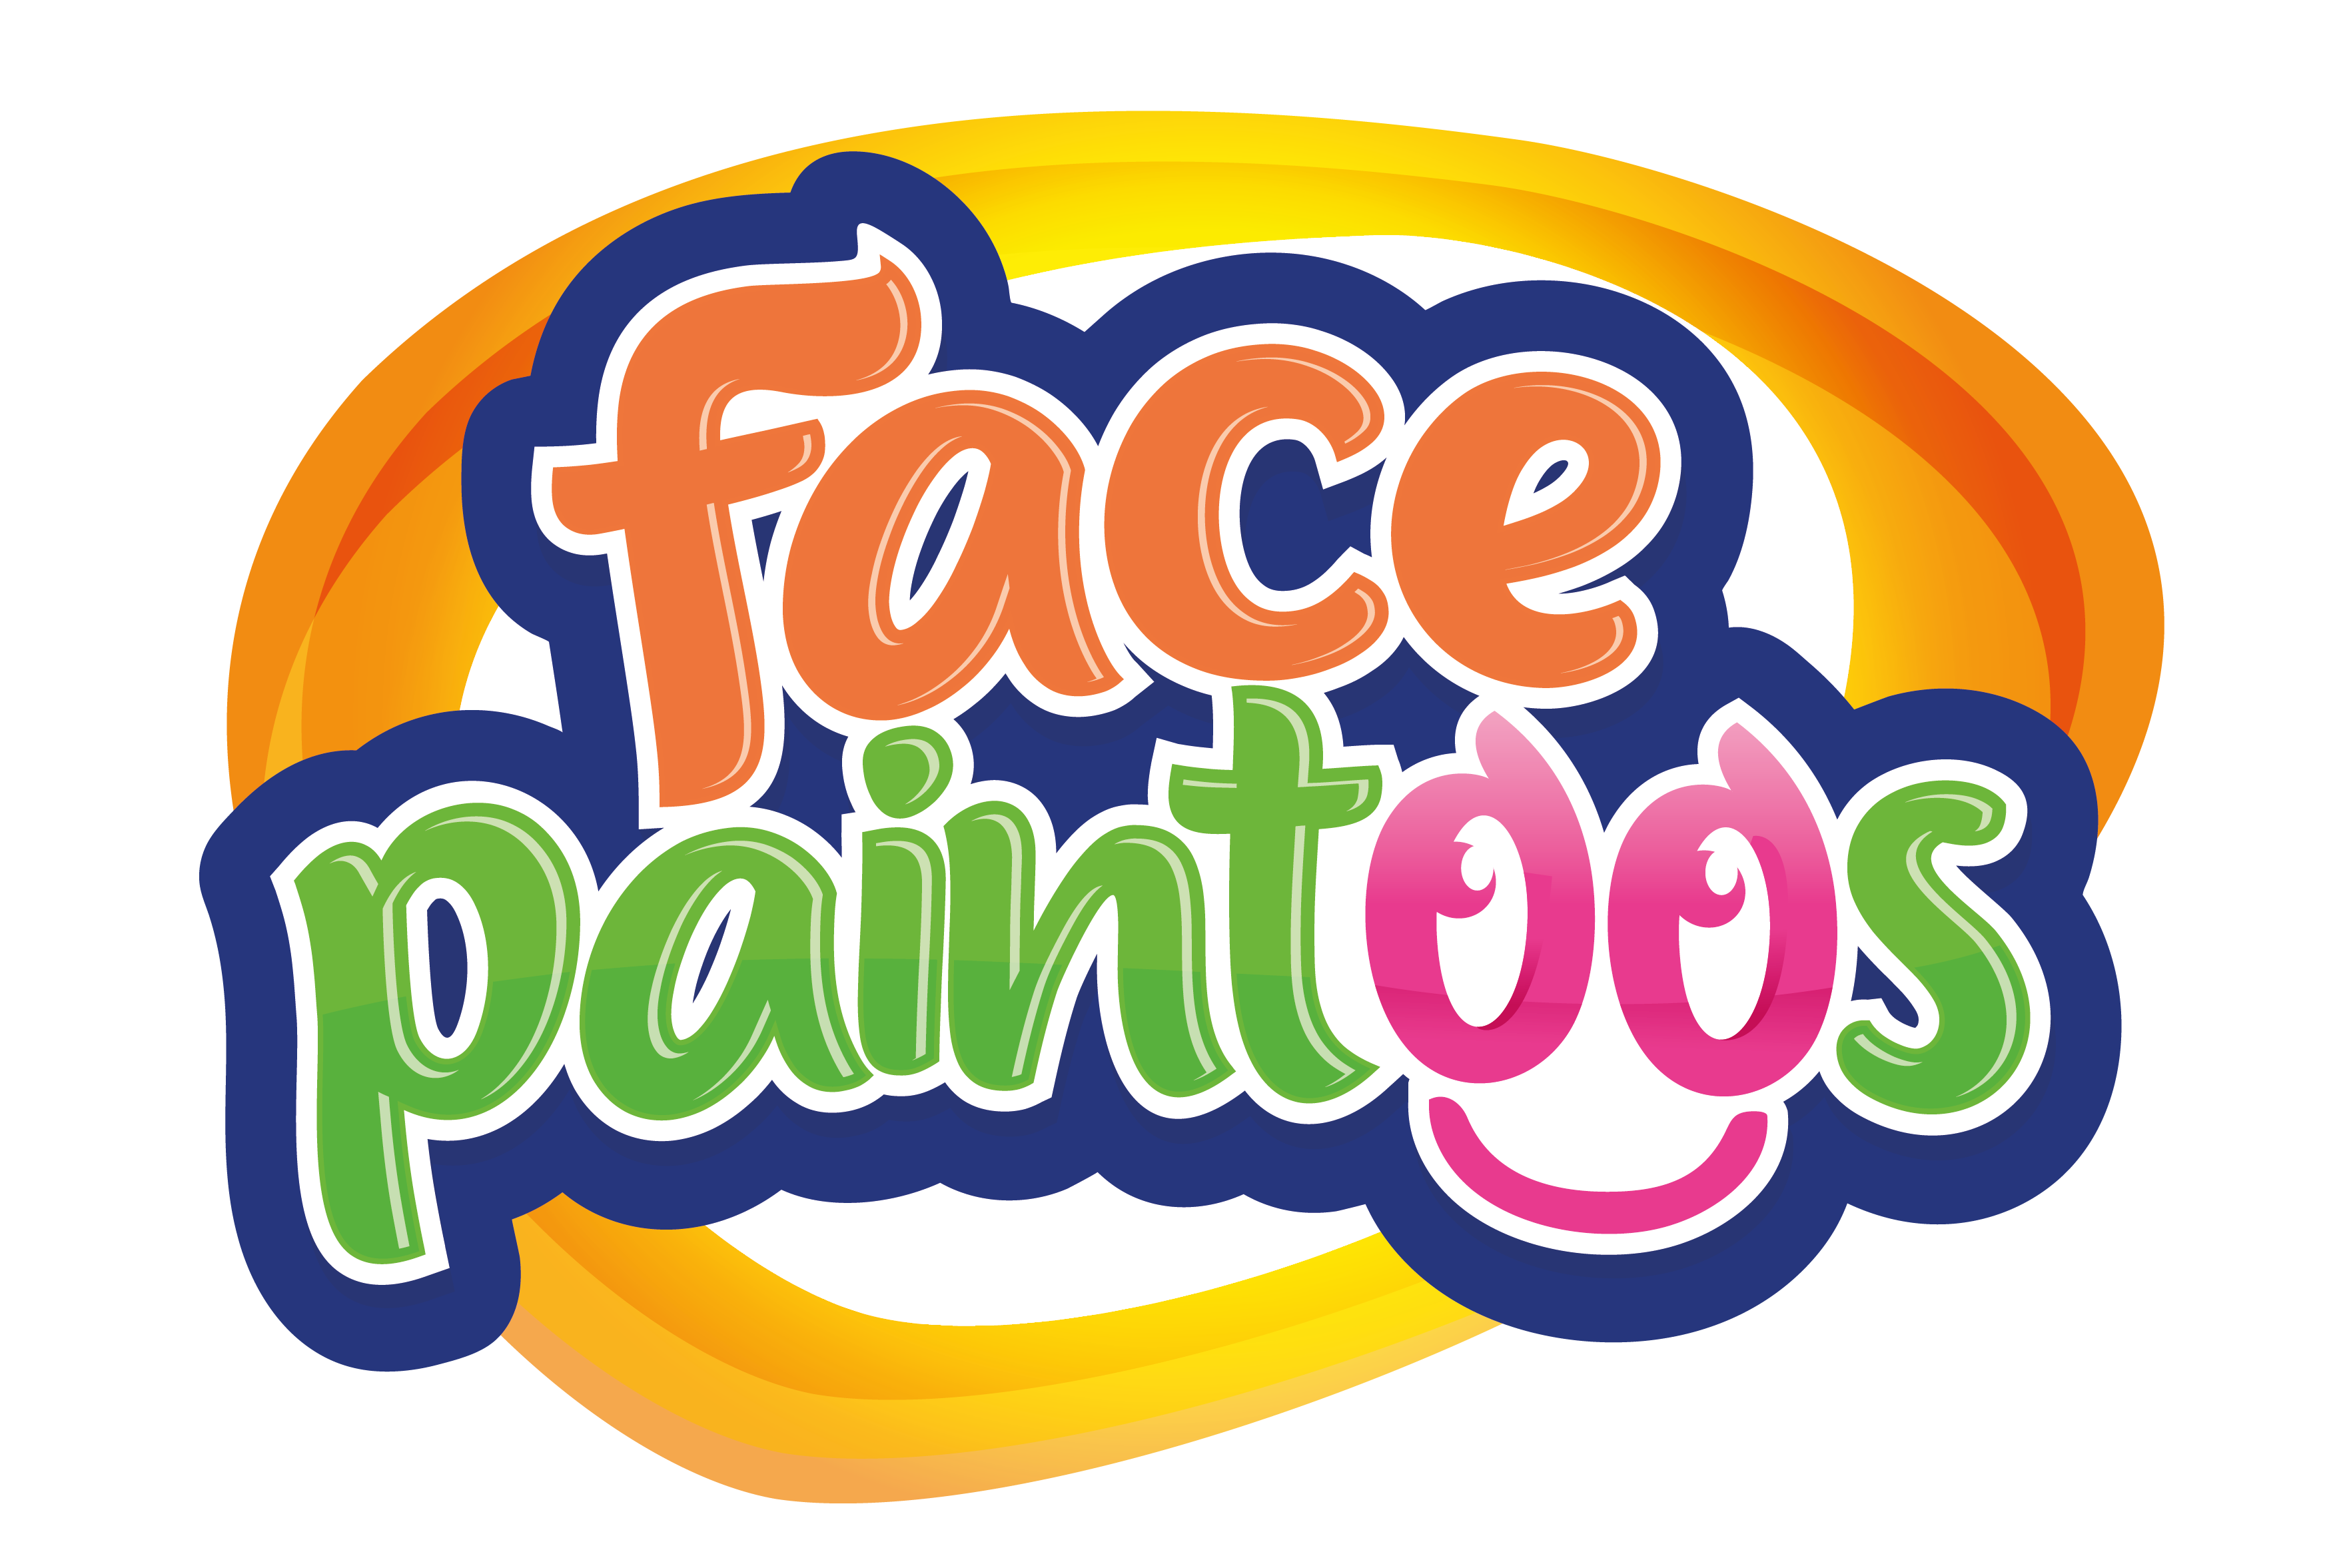 Face Paintoos™ logo